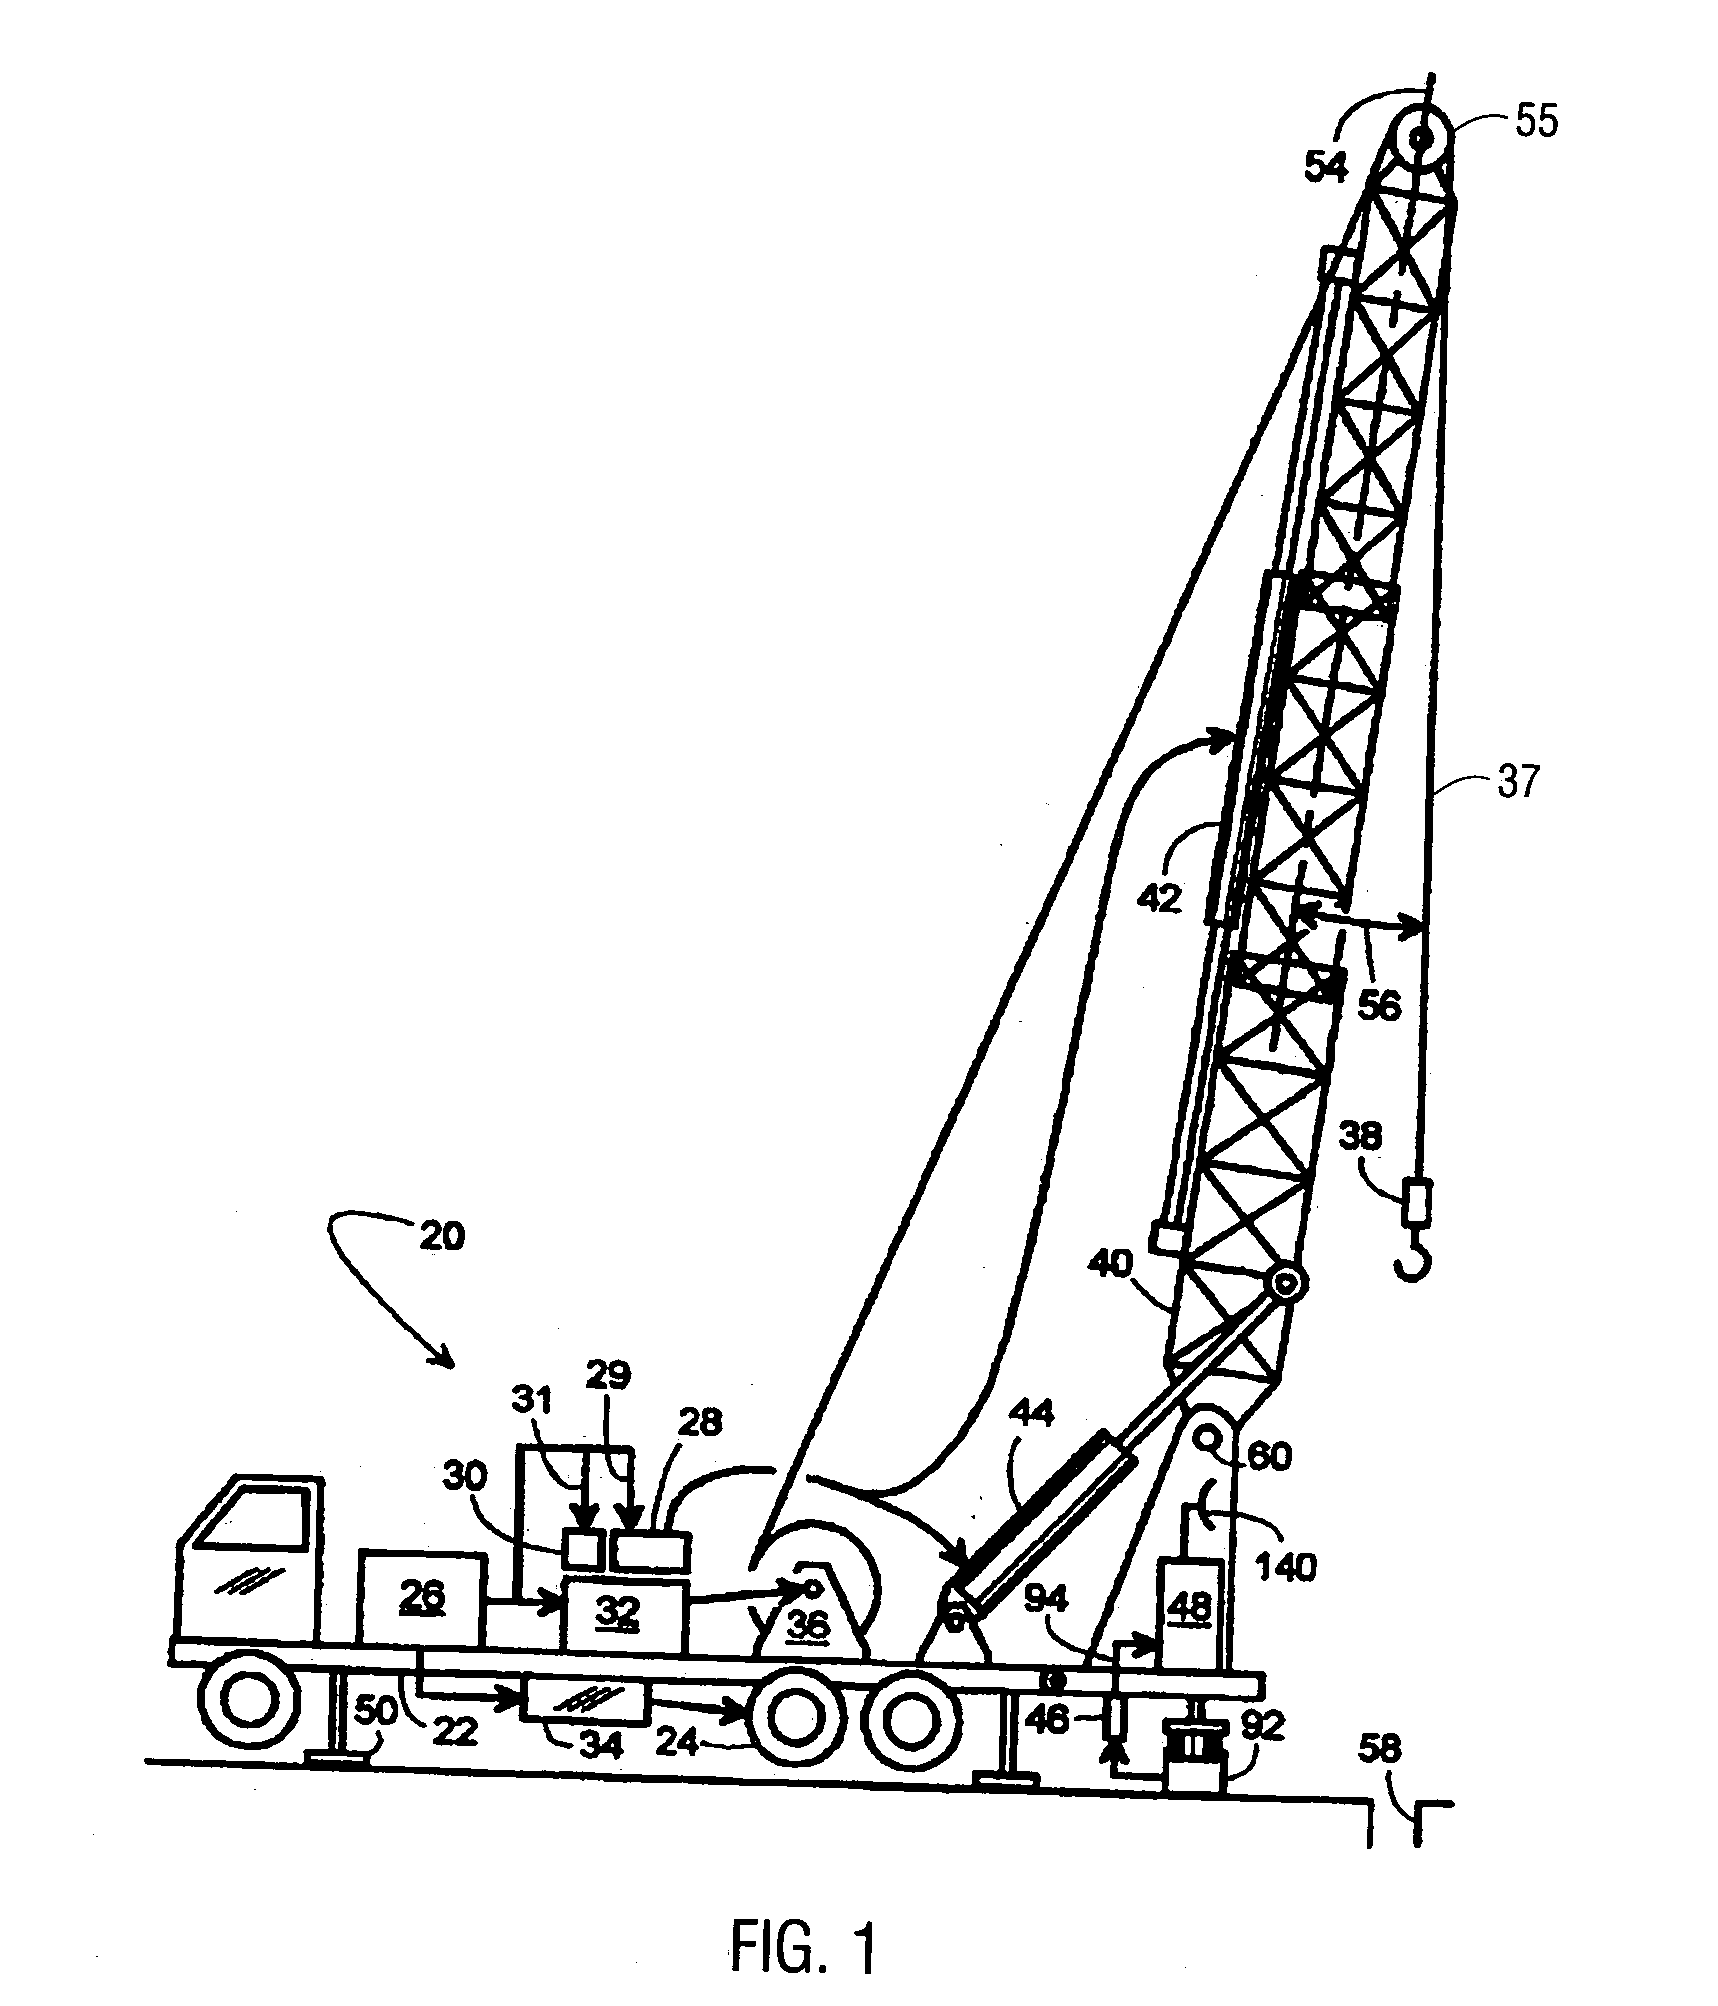 patent us20040162658 - crown out-floor out device for a well service rig